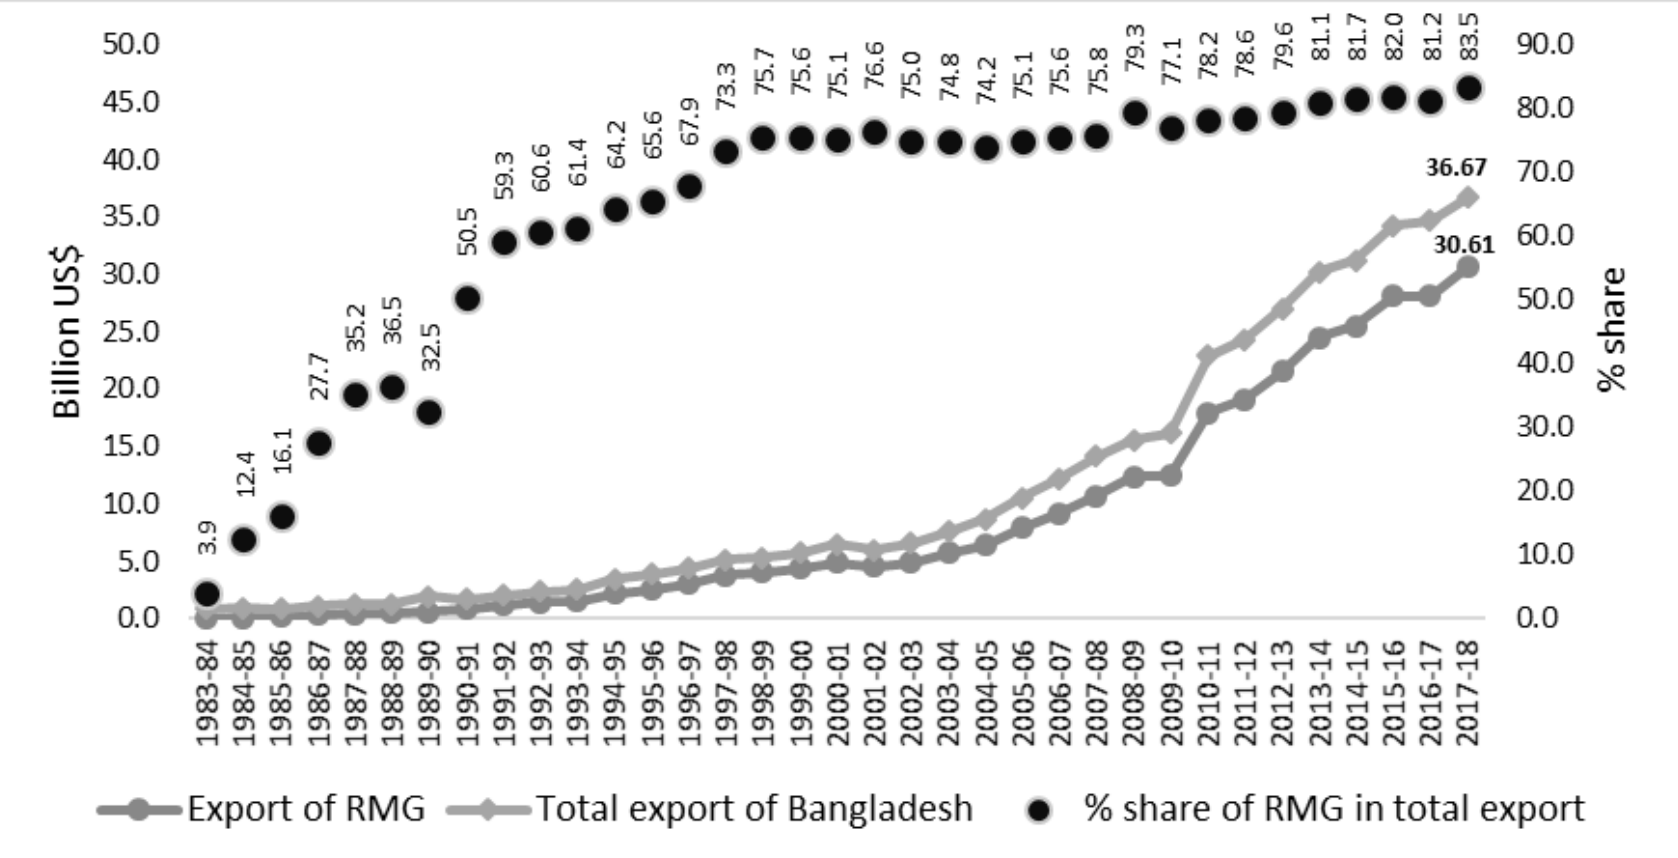 Chart showing that as exports and GDP have risen, the share of garments in exports remains very high, in the 80 percent range